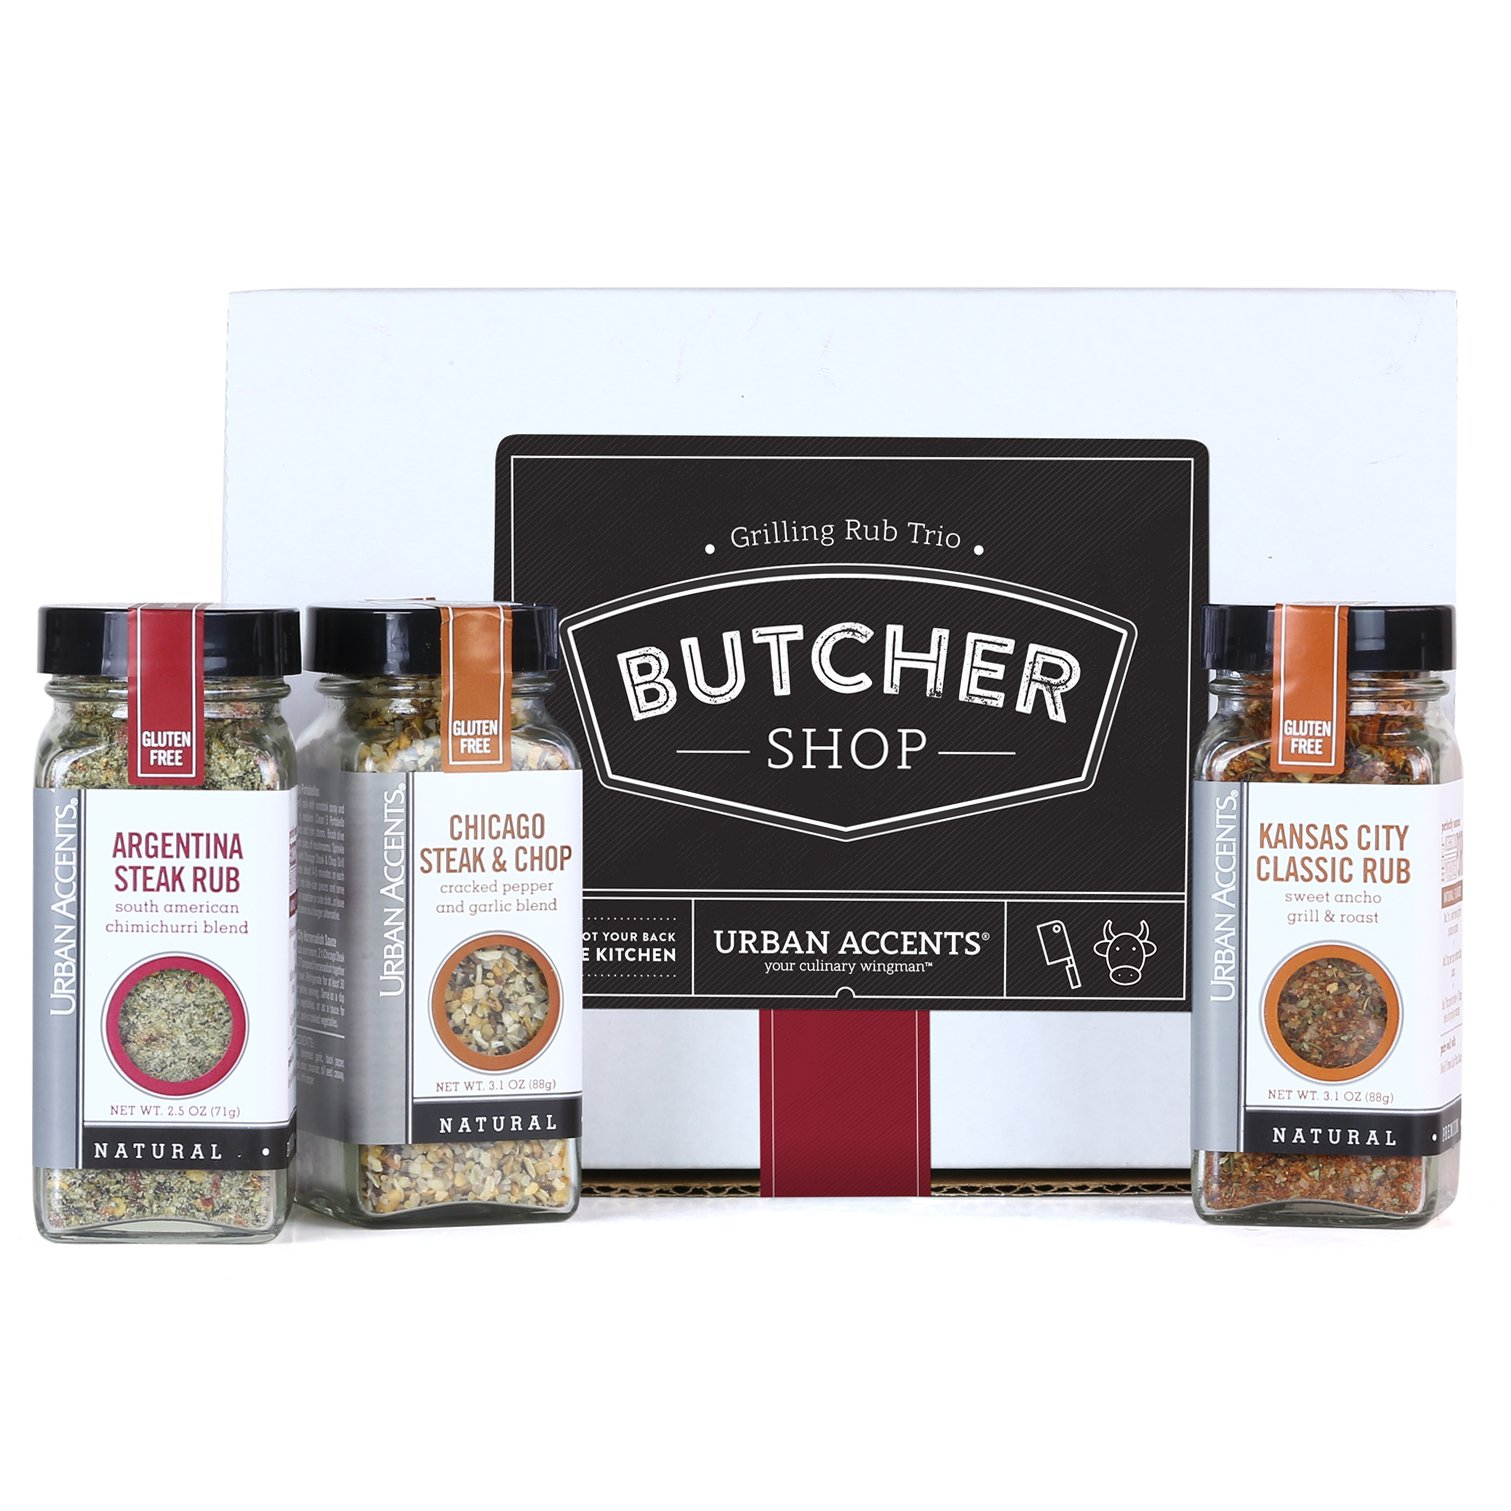 BUTCHER SHOP, A Gourmet Grilling Rub Trio of Spices Gift Set, Perfect for Weddings, Housewarmings or Any Occasion - Urban Accents by Urban Accents (Image #1)